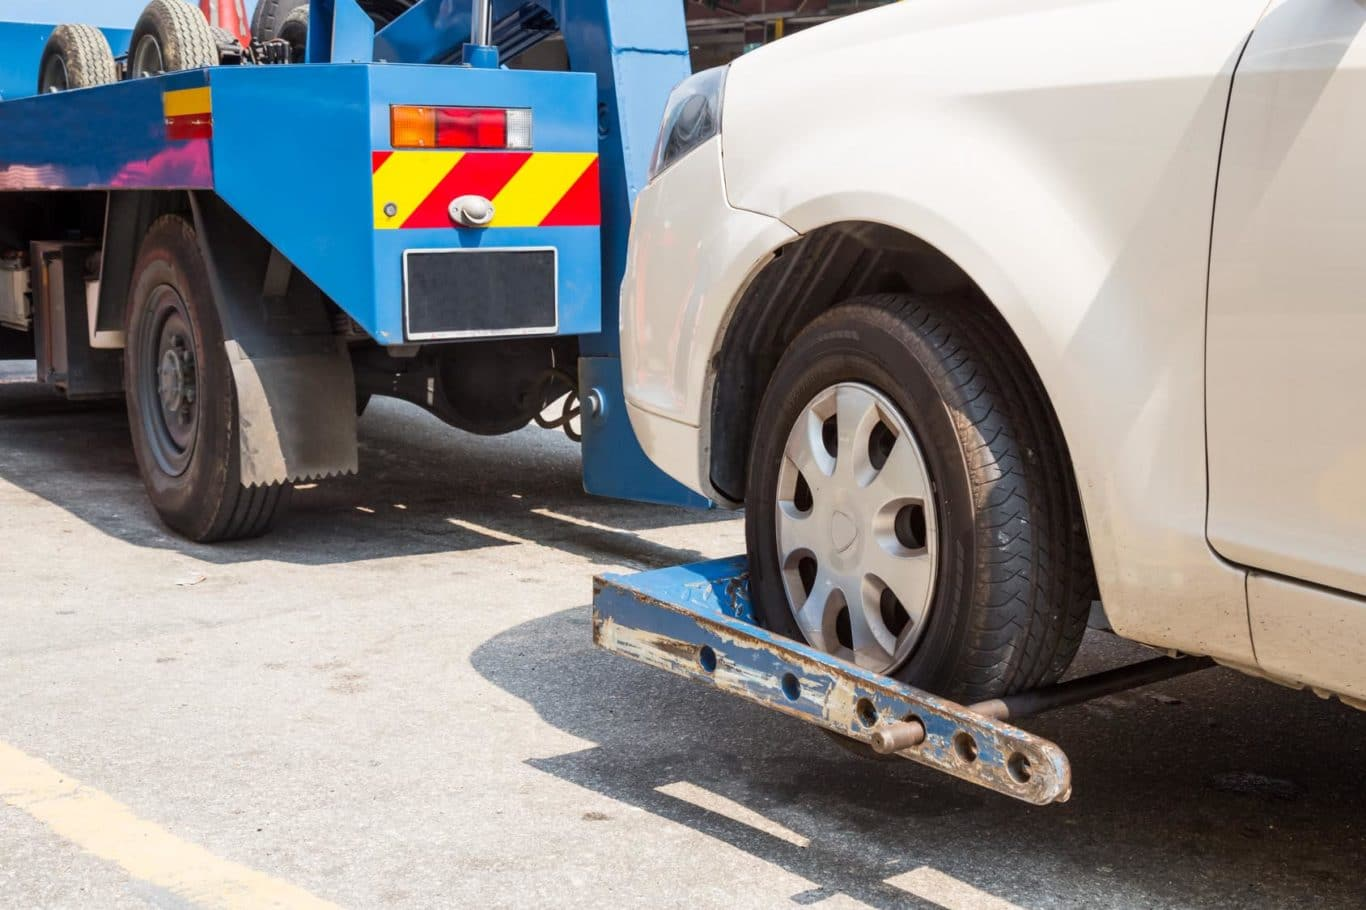 Naas expert Car Towing services